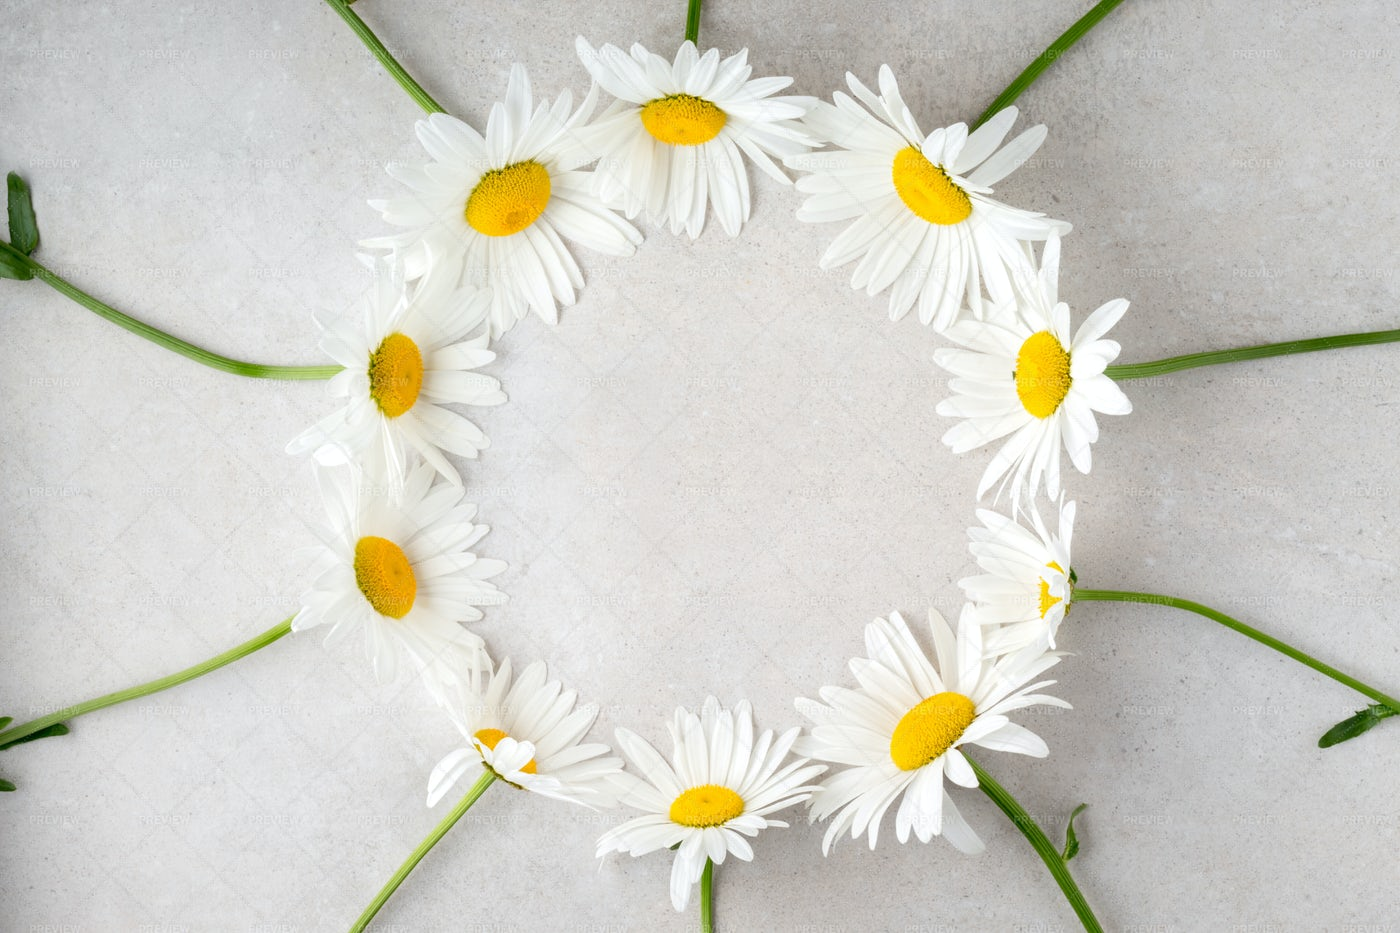 Frame With Lovely Camomiles: Stock Photos